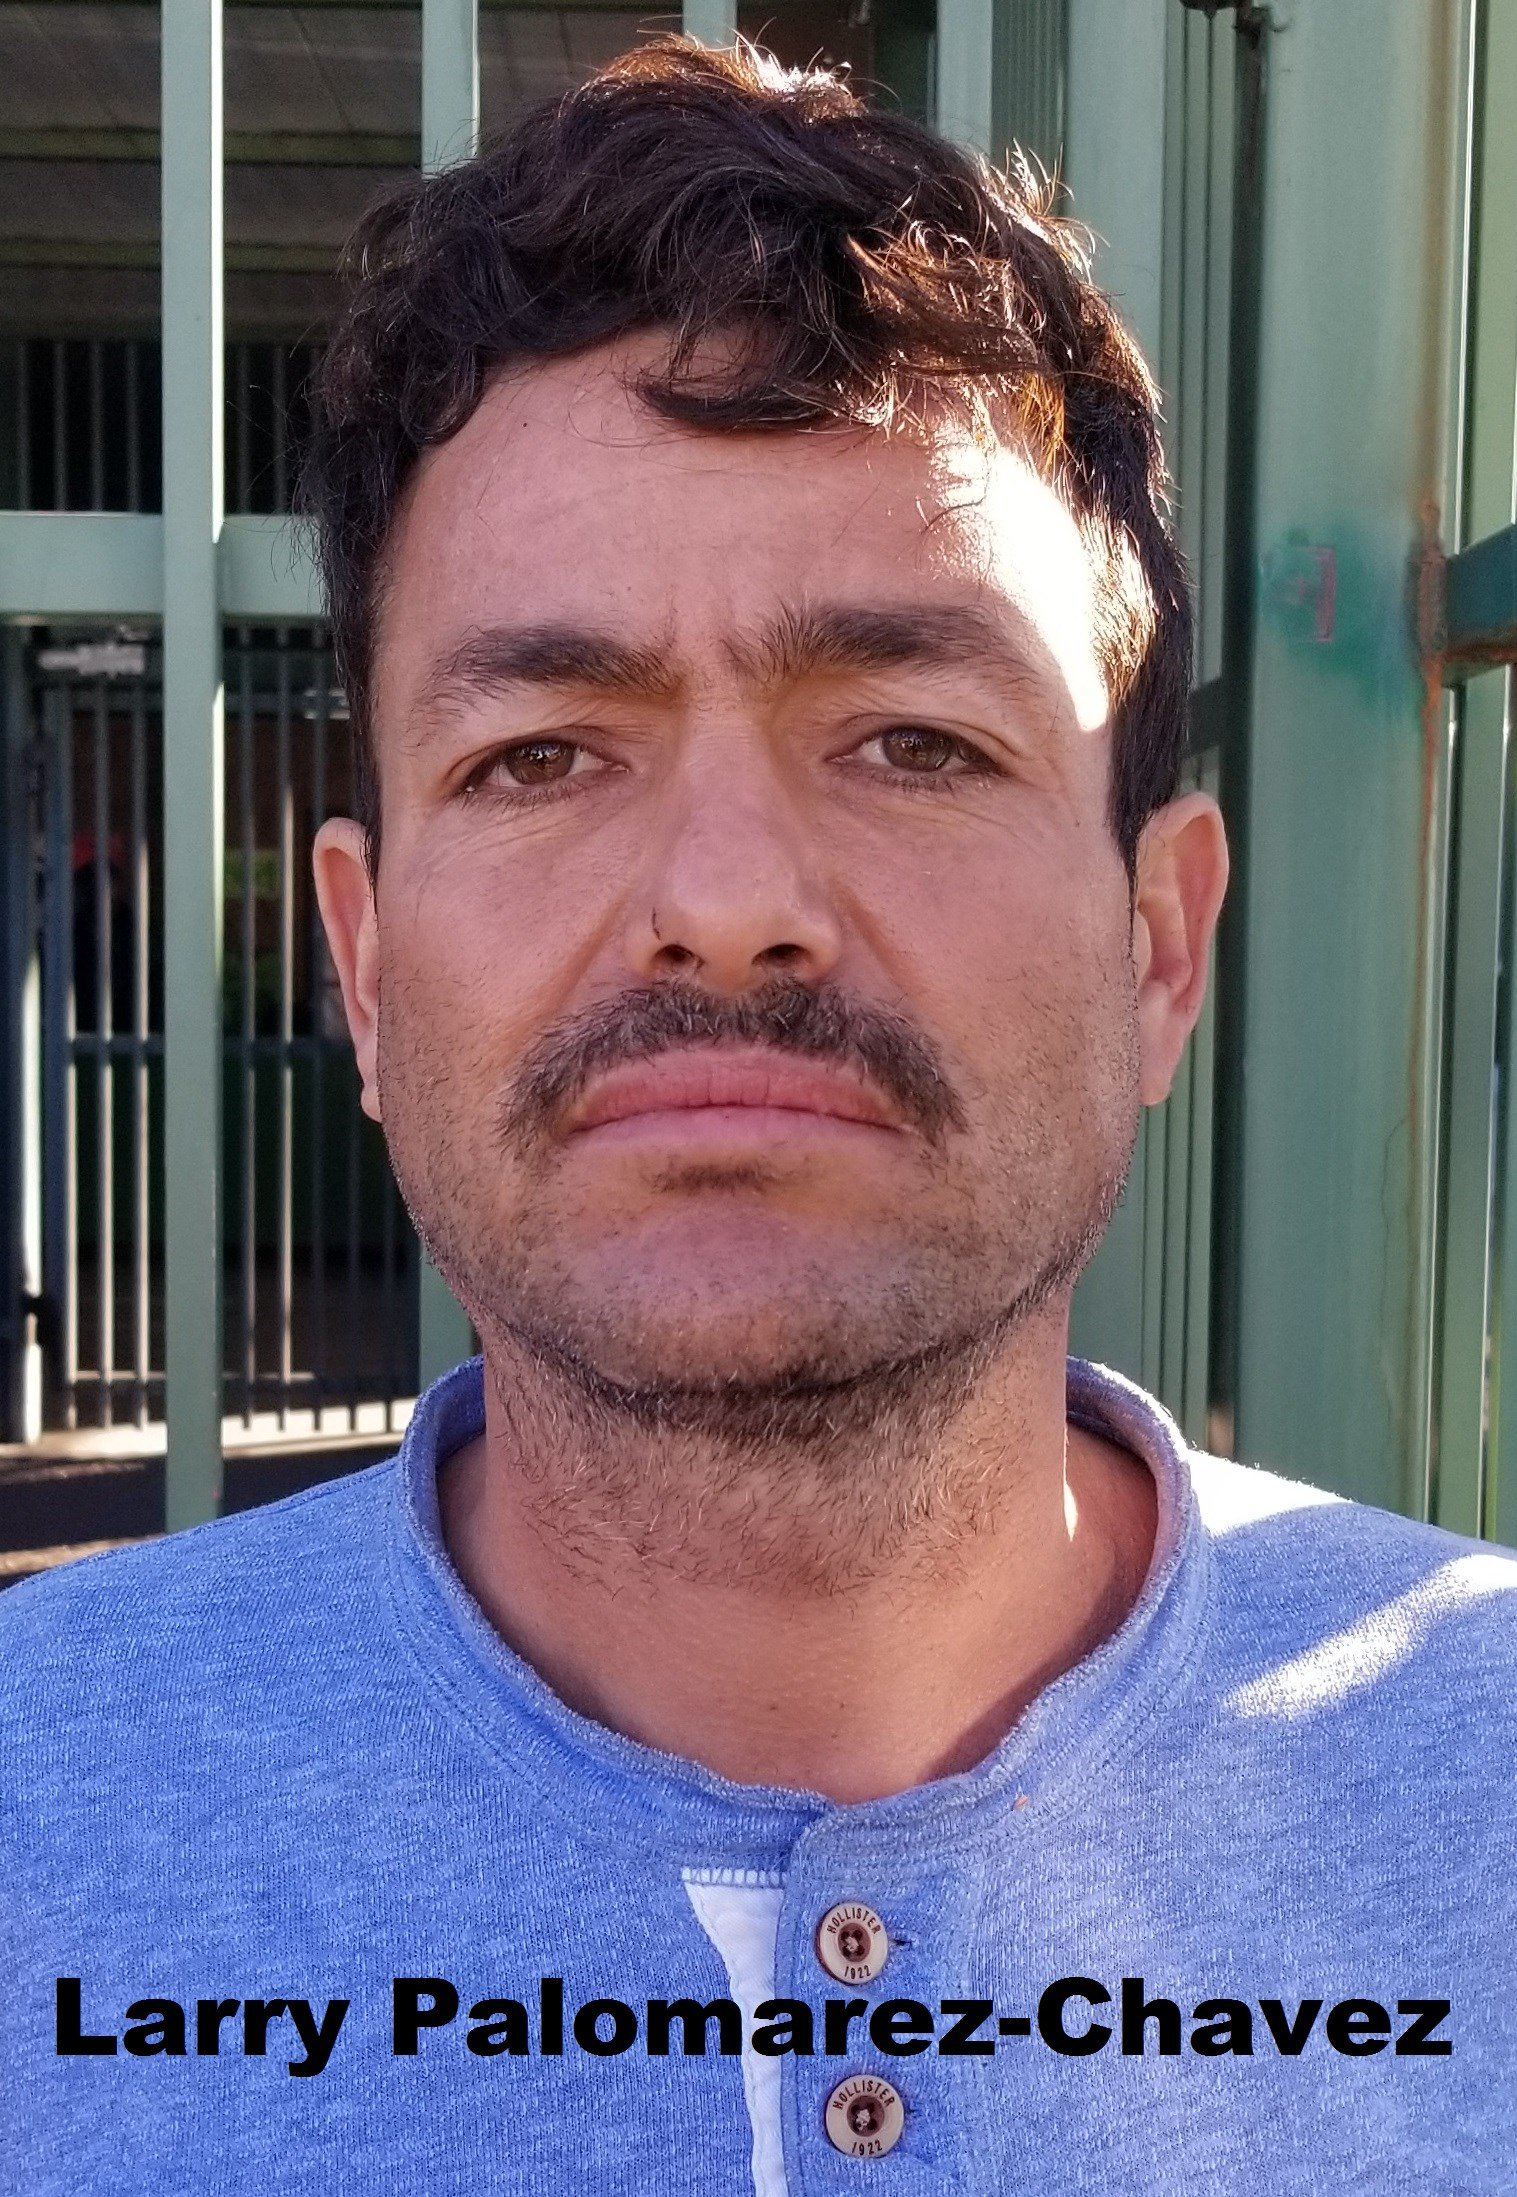 Mug shot of Larry Palomarez-Chavez, 39. (Source: U.S. CBP)